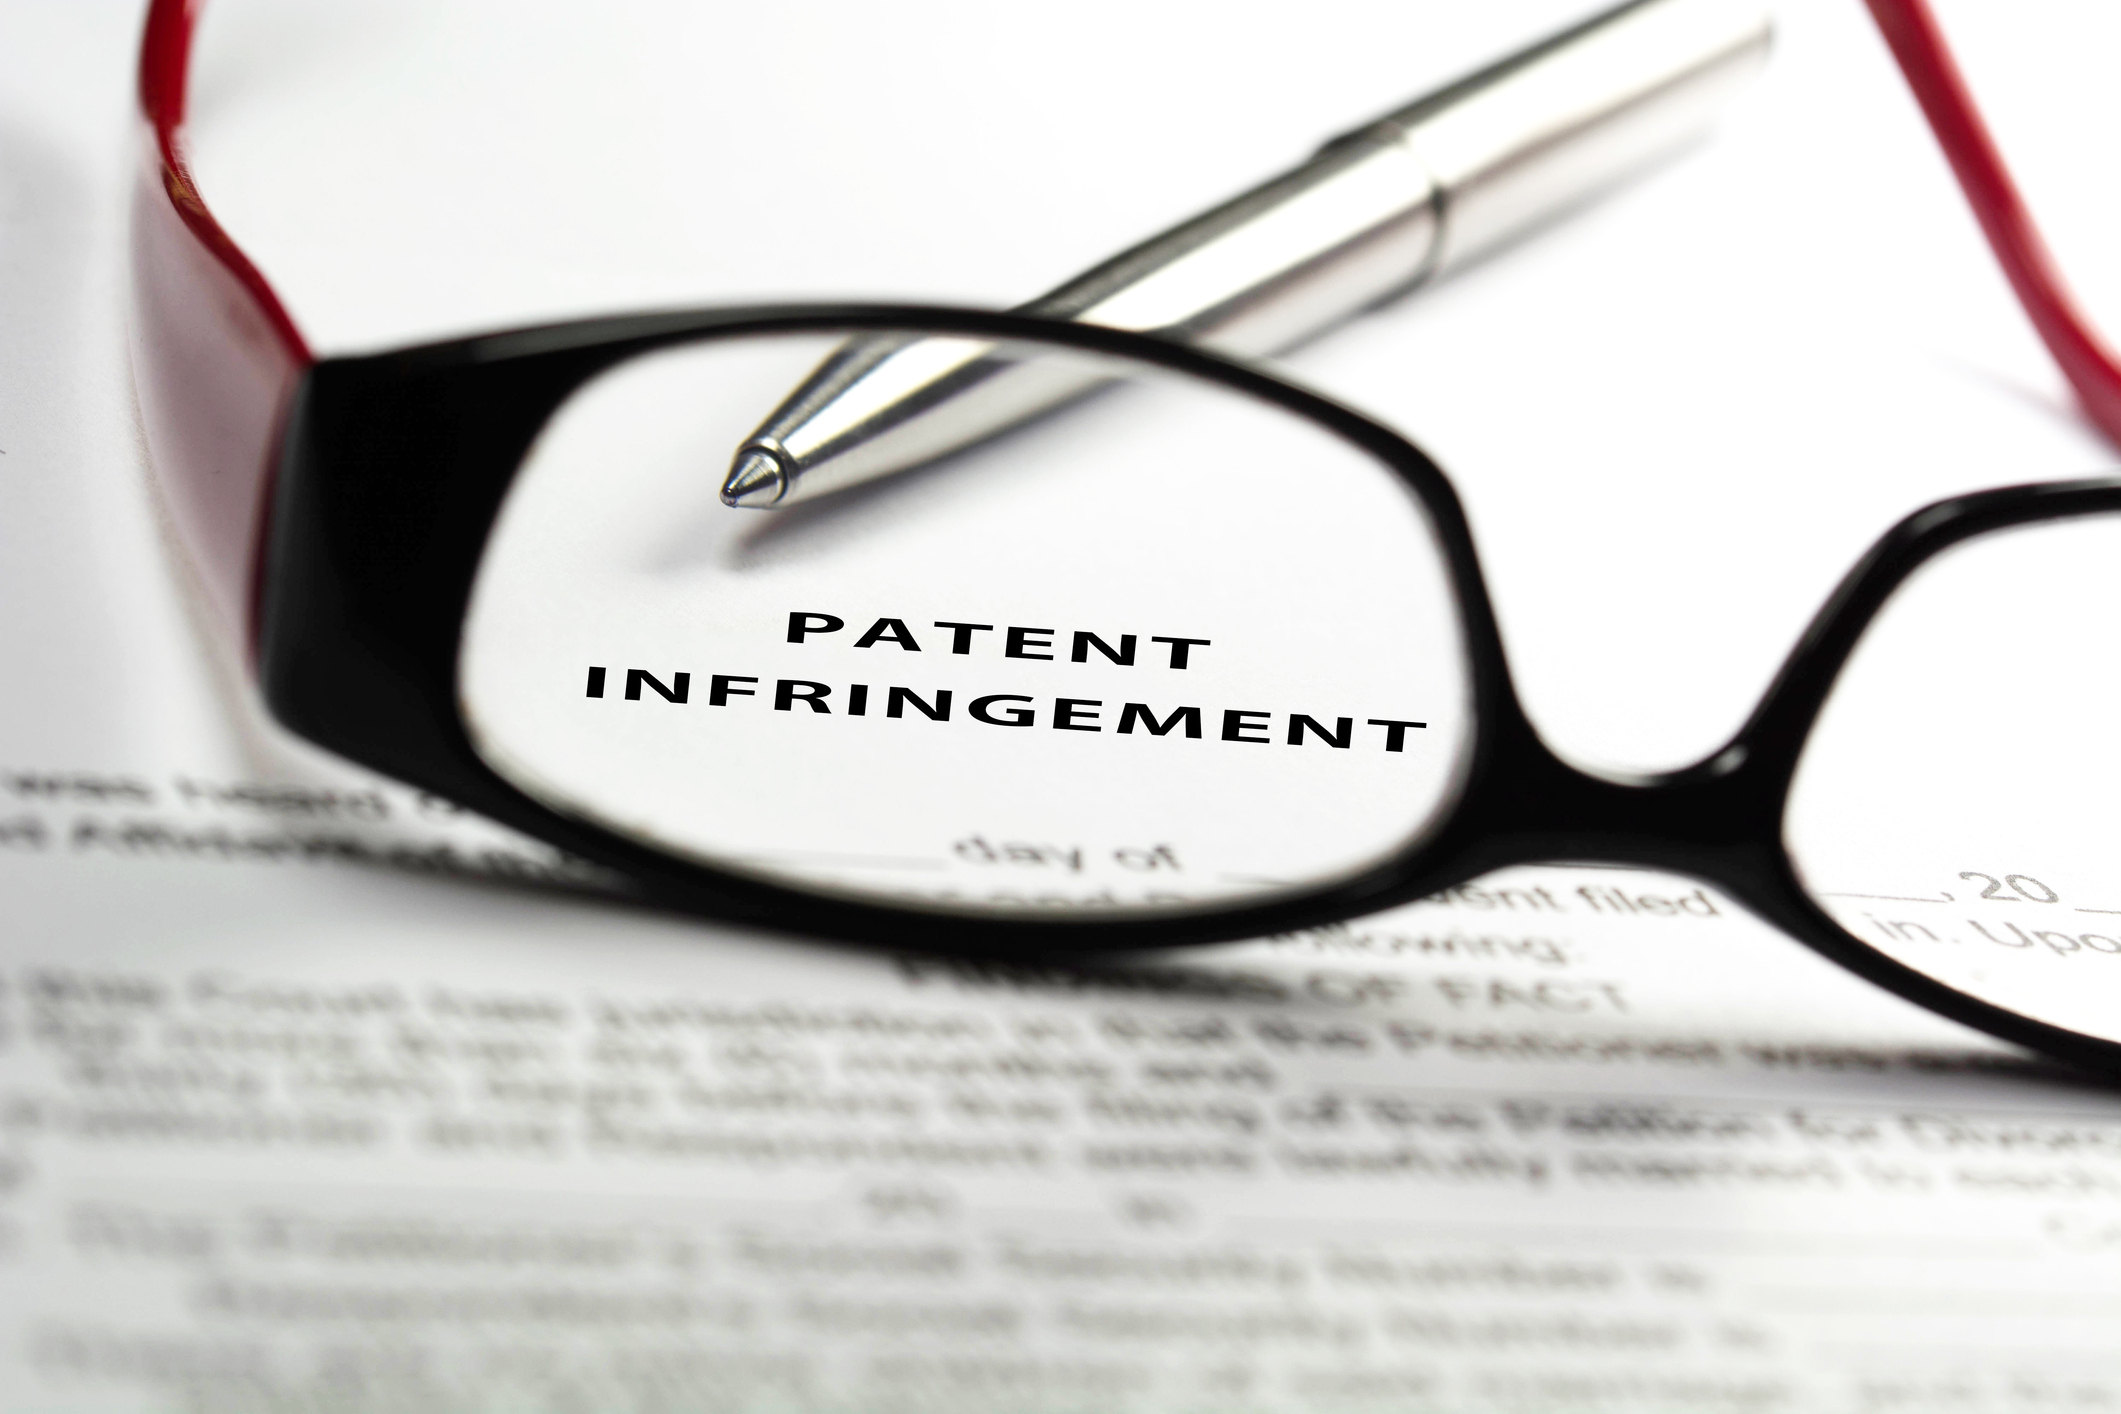 Patent infringement opinions - If you have invented or are in the process of developing a new product or other potentially patentable intellectual property, there are a number of good reasons to seek a patent infringement opinion from a licensed patent attorney.